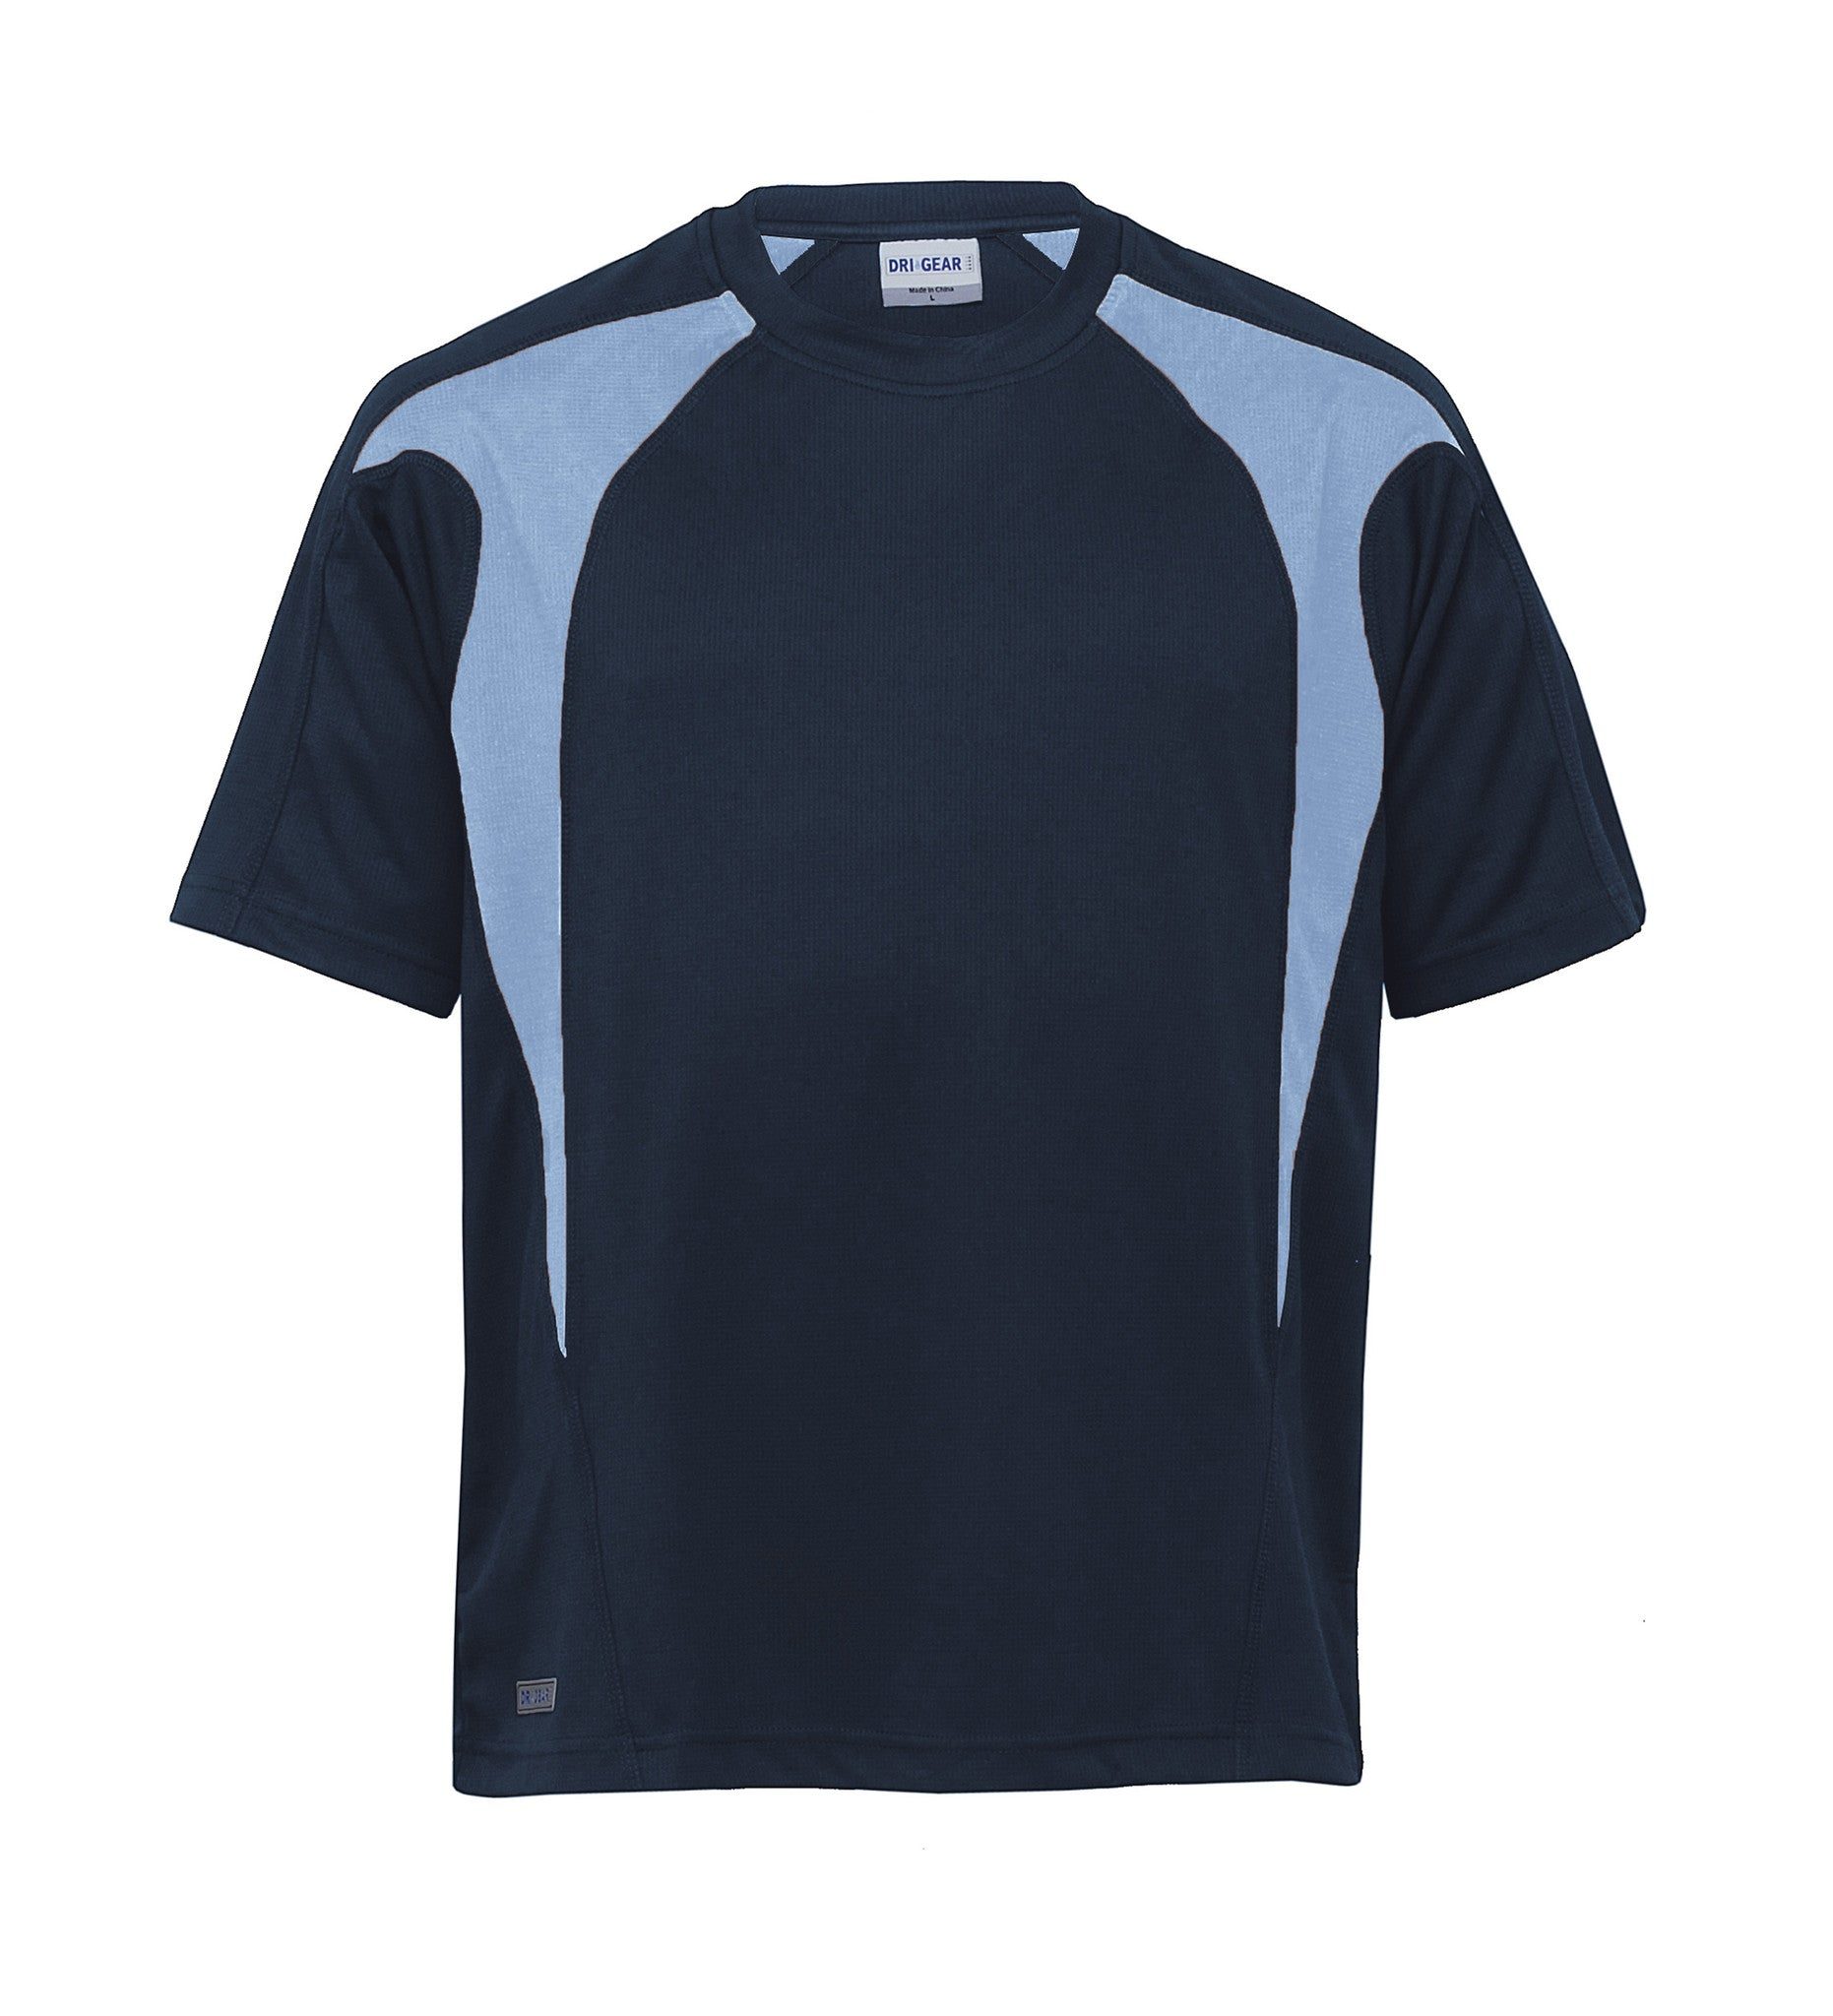 Gear For Life-Gear For Life Dri Gear Spliced Zenith Tee (2nd 8 Colours)--Corporate Apparel Online - 1